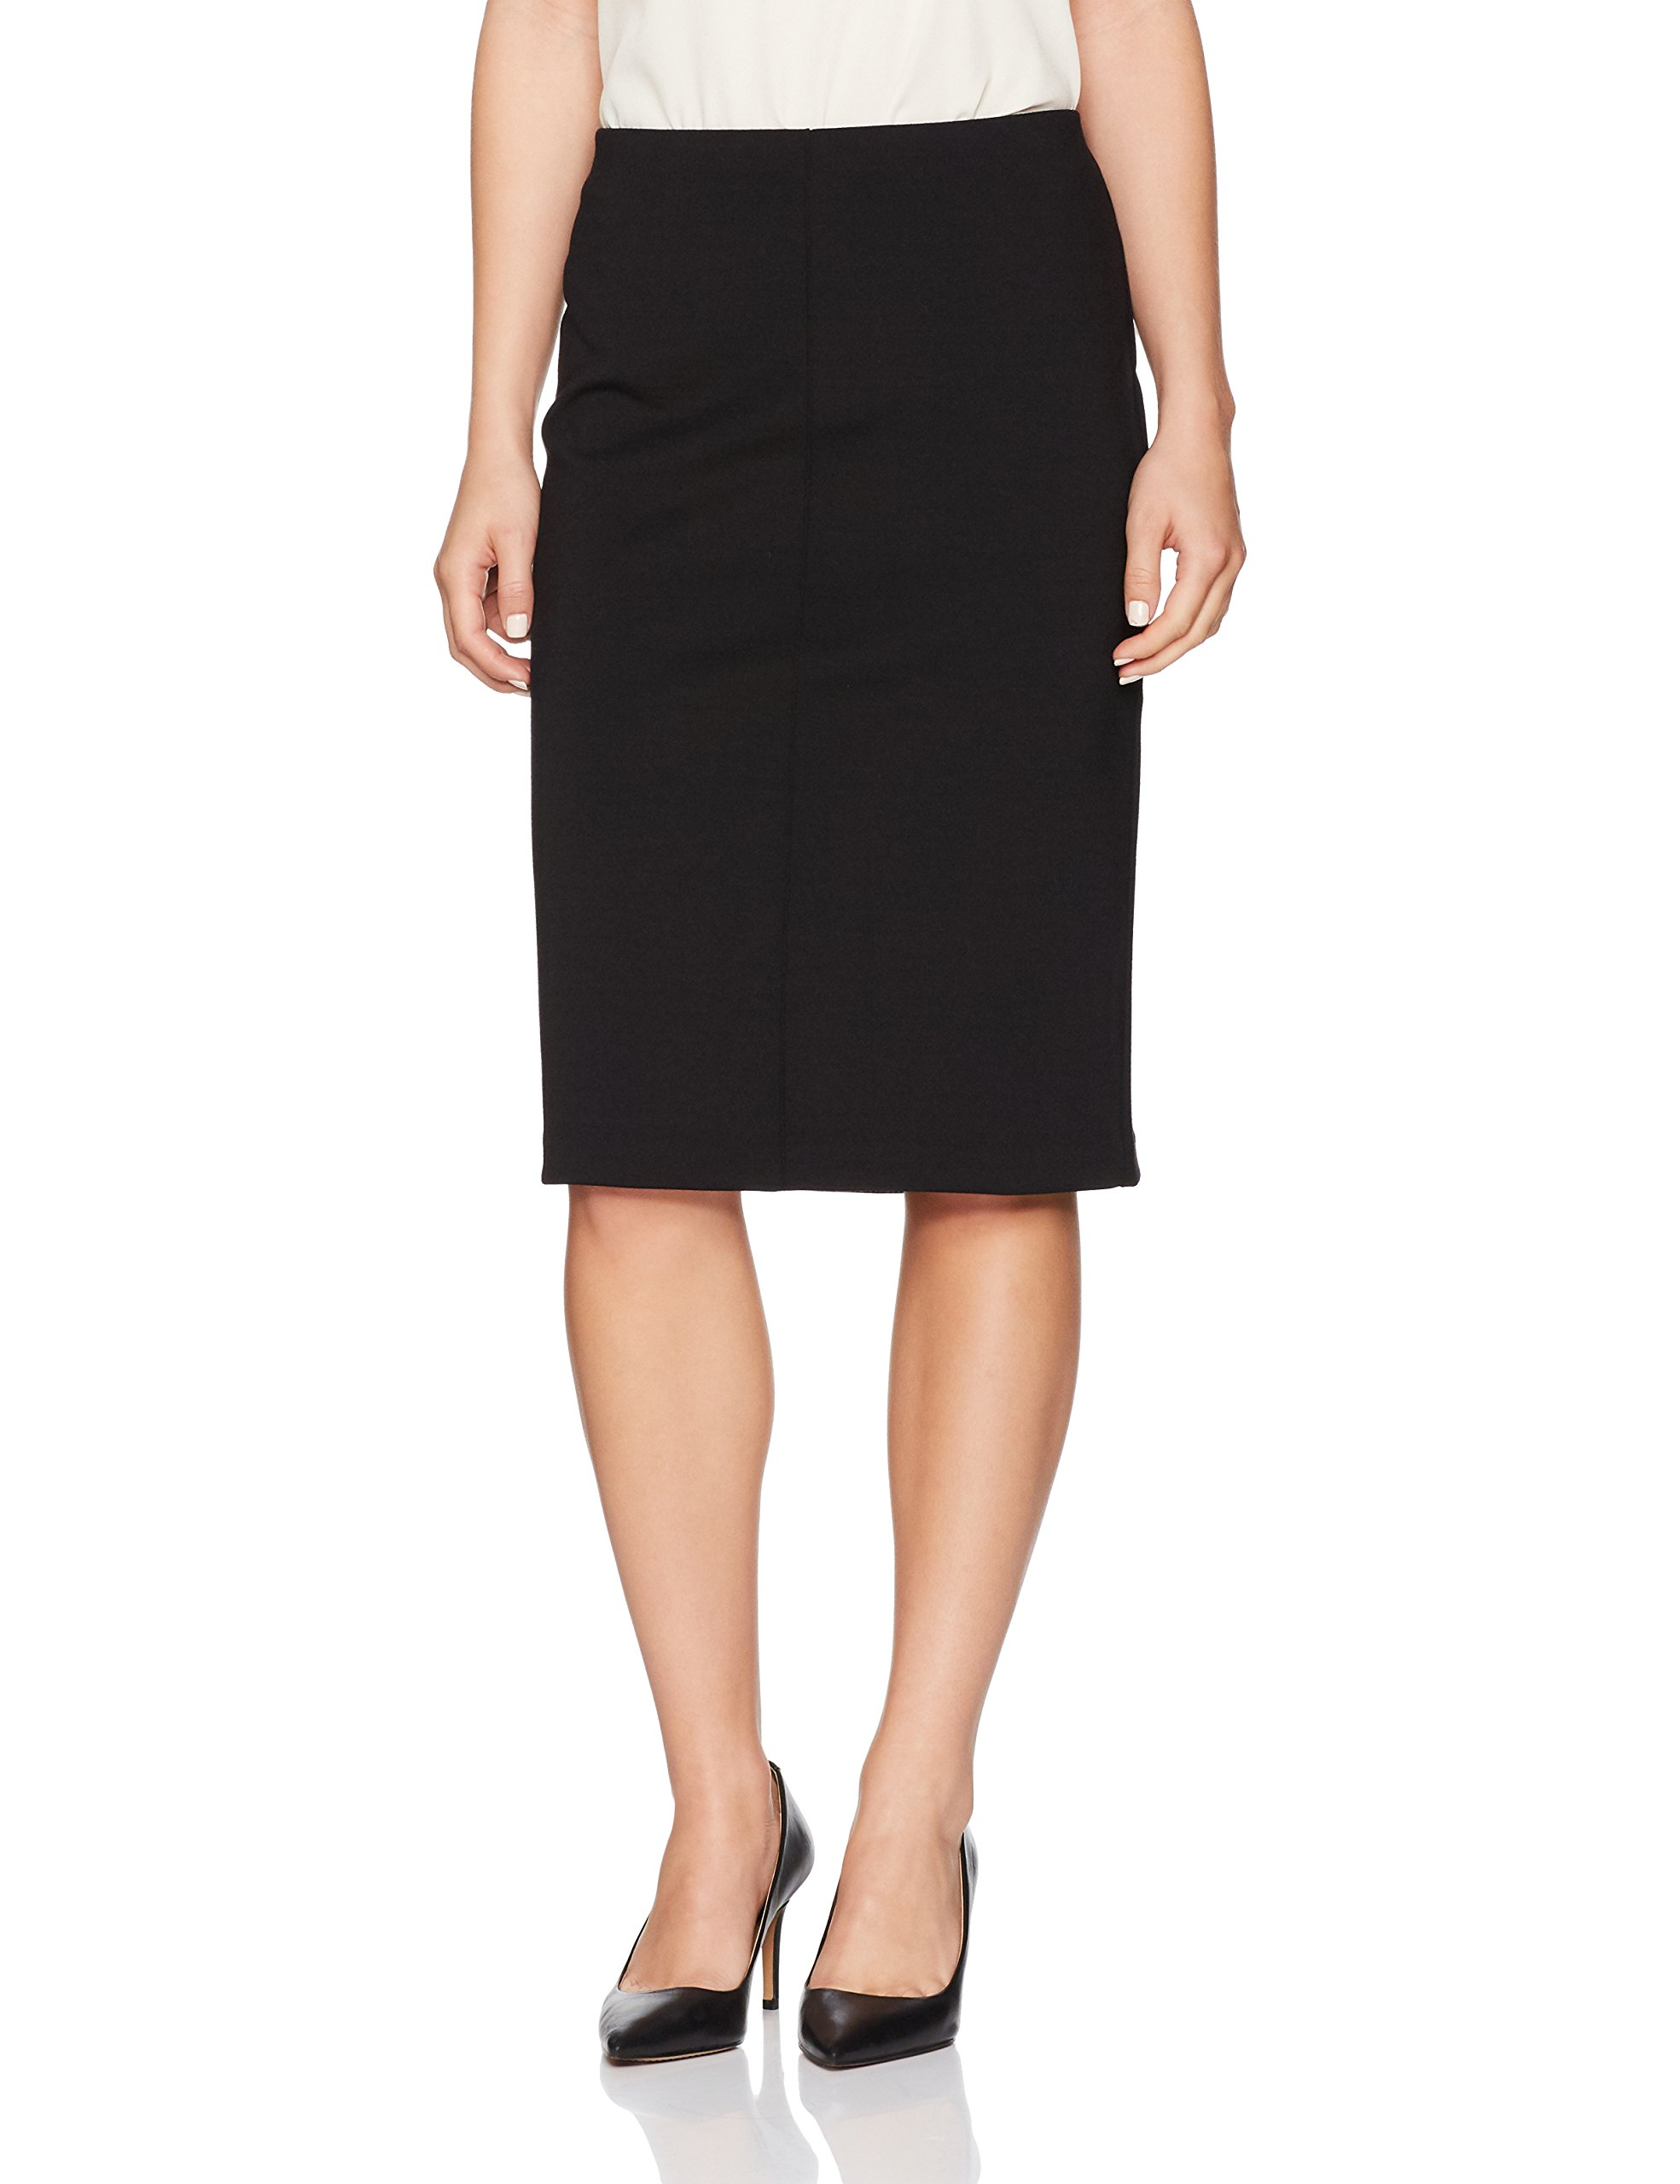 Ruby Rd. Women's Petite Pull-on Stretch Ponte Pencil Skirt, Black, XL by Ruby Rd.